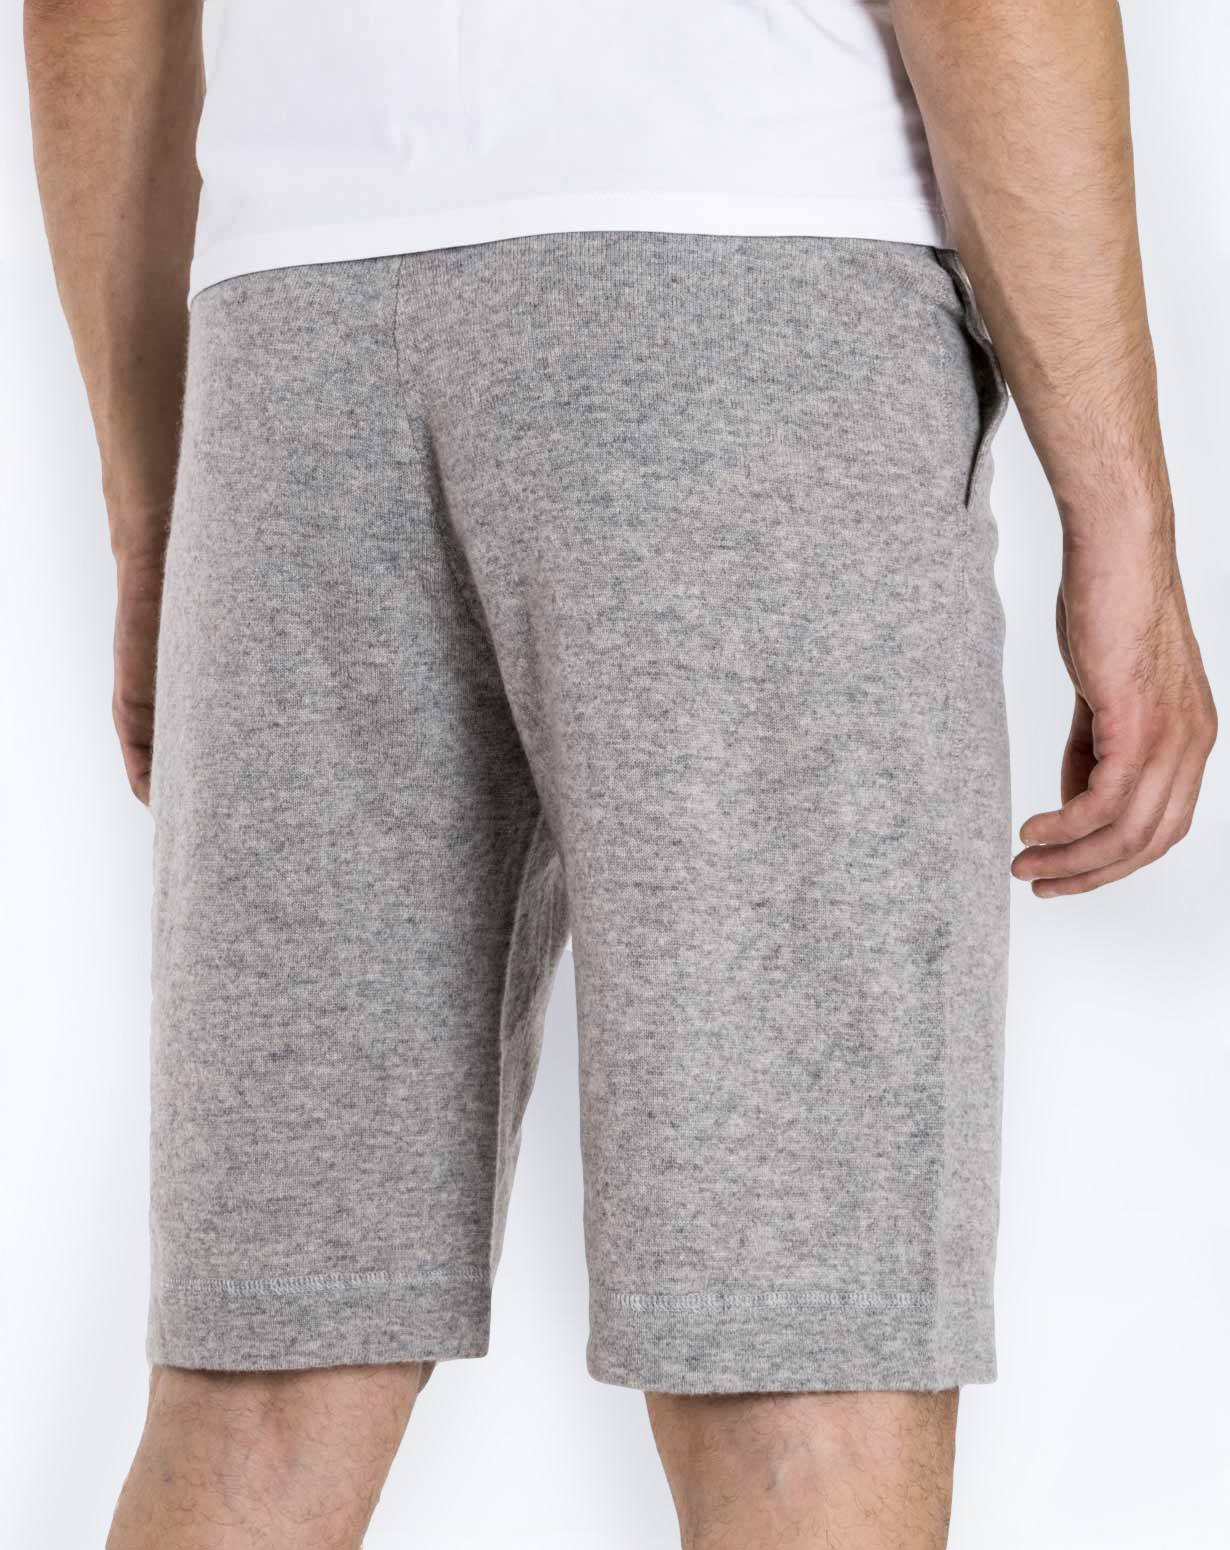 Men's Joggers. Shop joggers for men at Zumiez, carrying jogger pants from brands like Crysp, Fairplay, American Stitch and more. Free shipping on all joggers. See Details. U.S. ONLY, EXCLUDING AK/HI. Store pickup is always free.